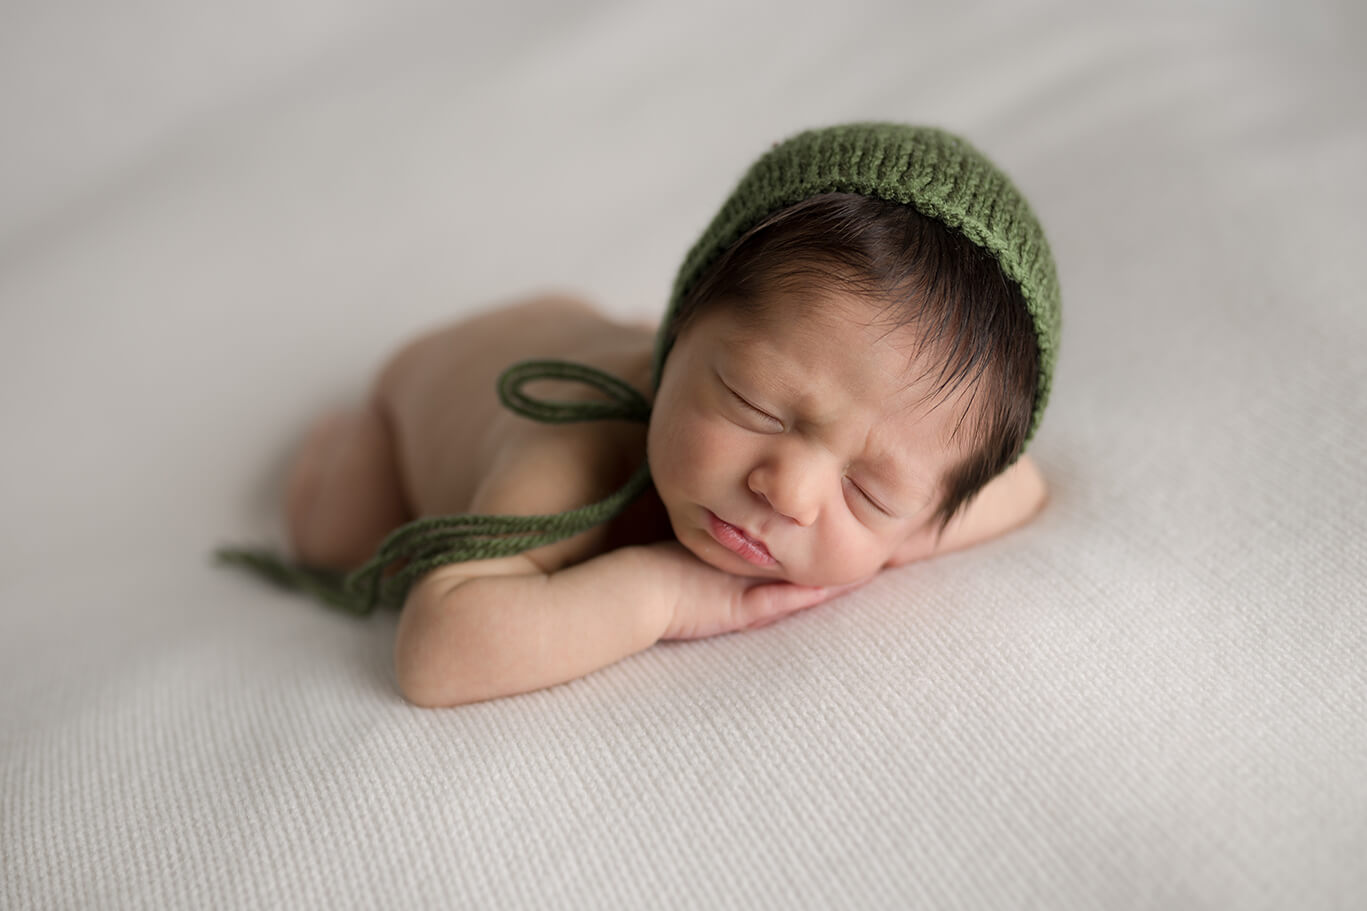 Newborn - Up to 10 days old for prime possibility